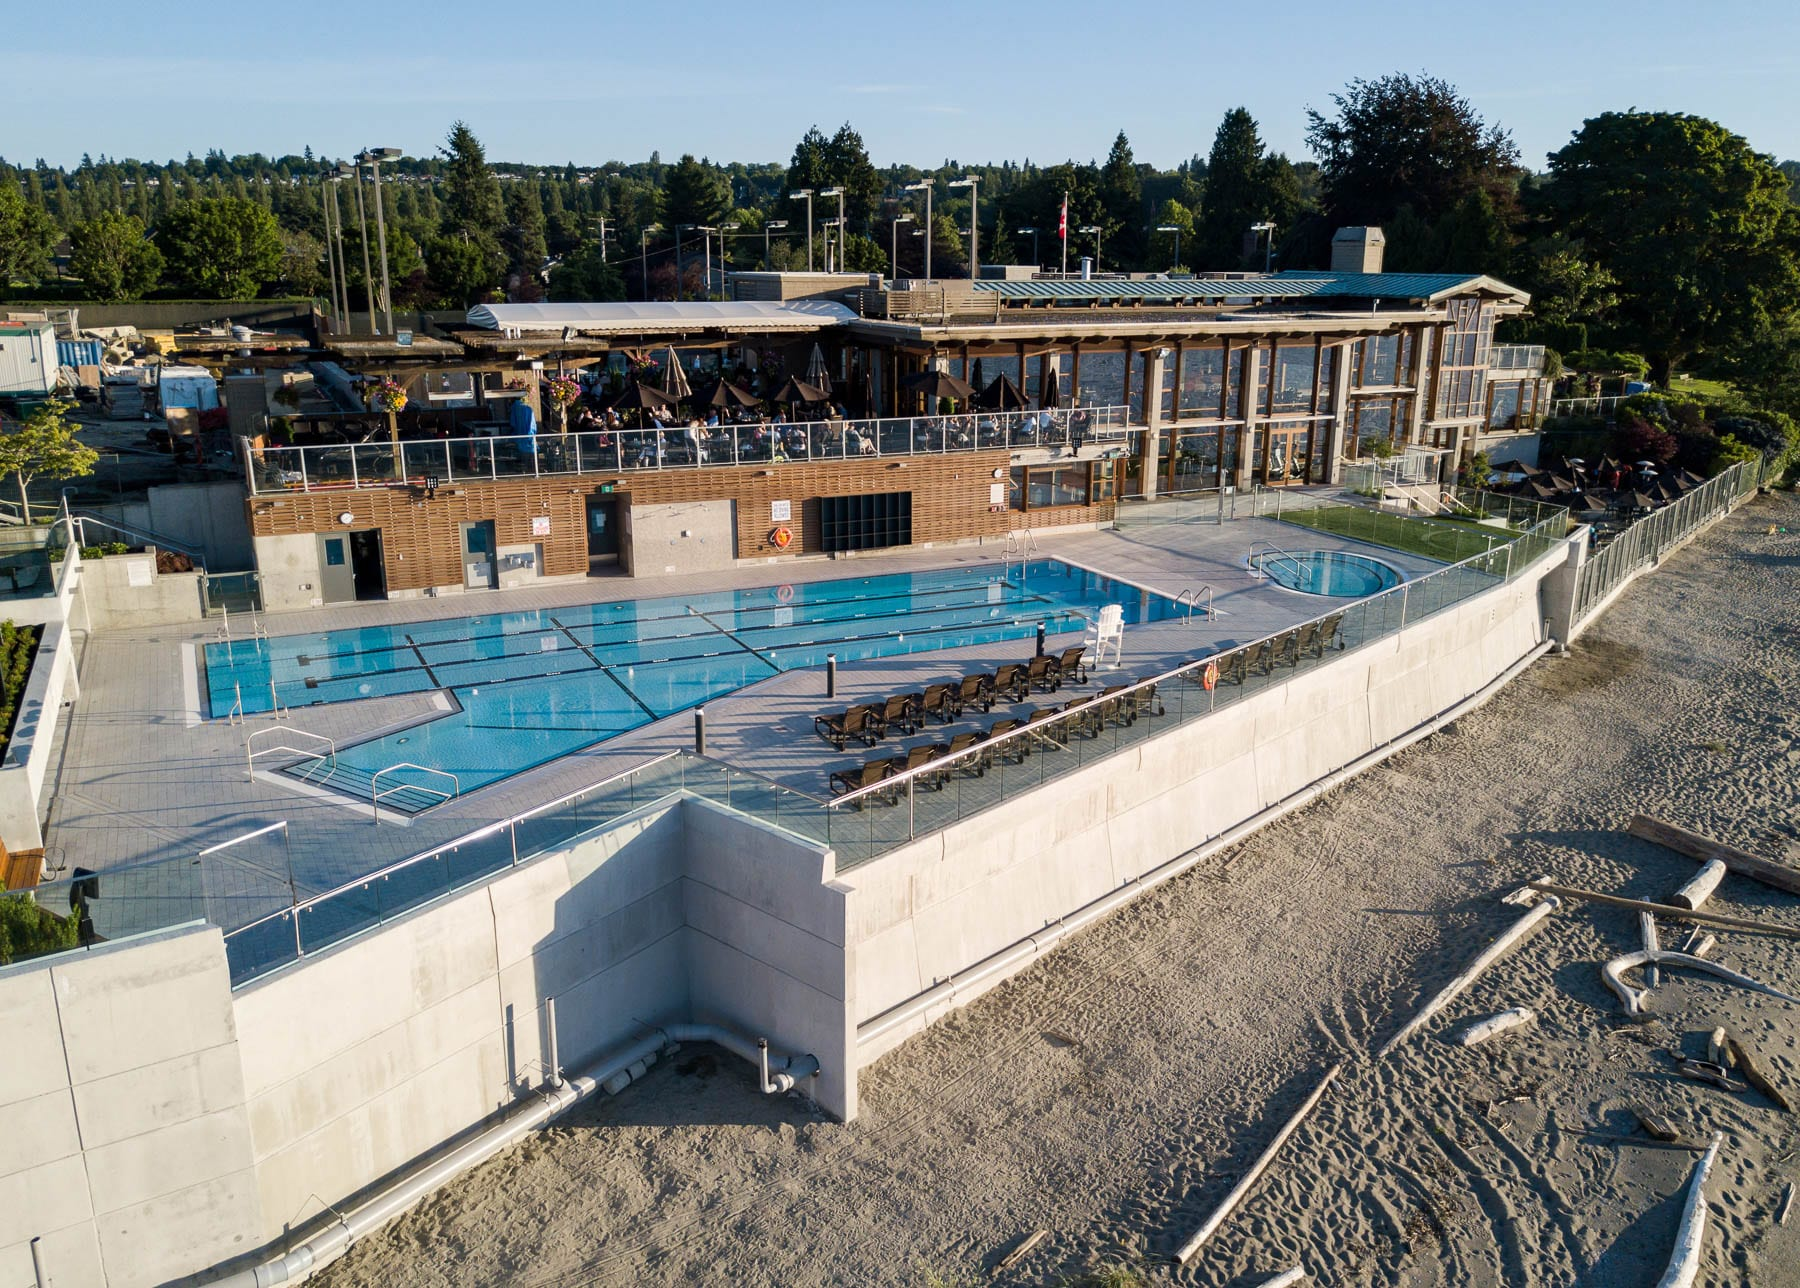 Jericho outdoor swimming pool with new outdoor showers, glass guardrails, outdoor benches, planters, stairs, and landscaping as well as improving the barbeque area and lower dining area